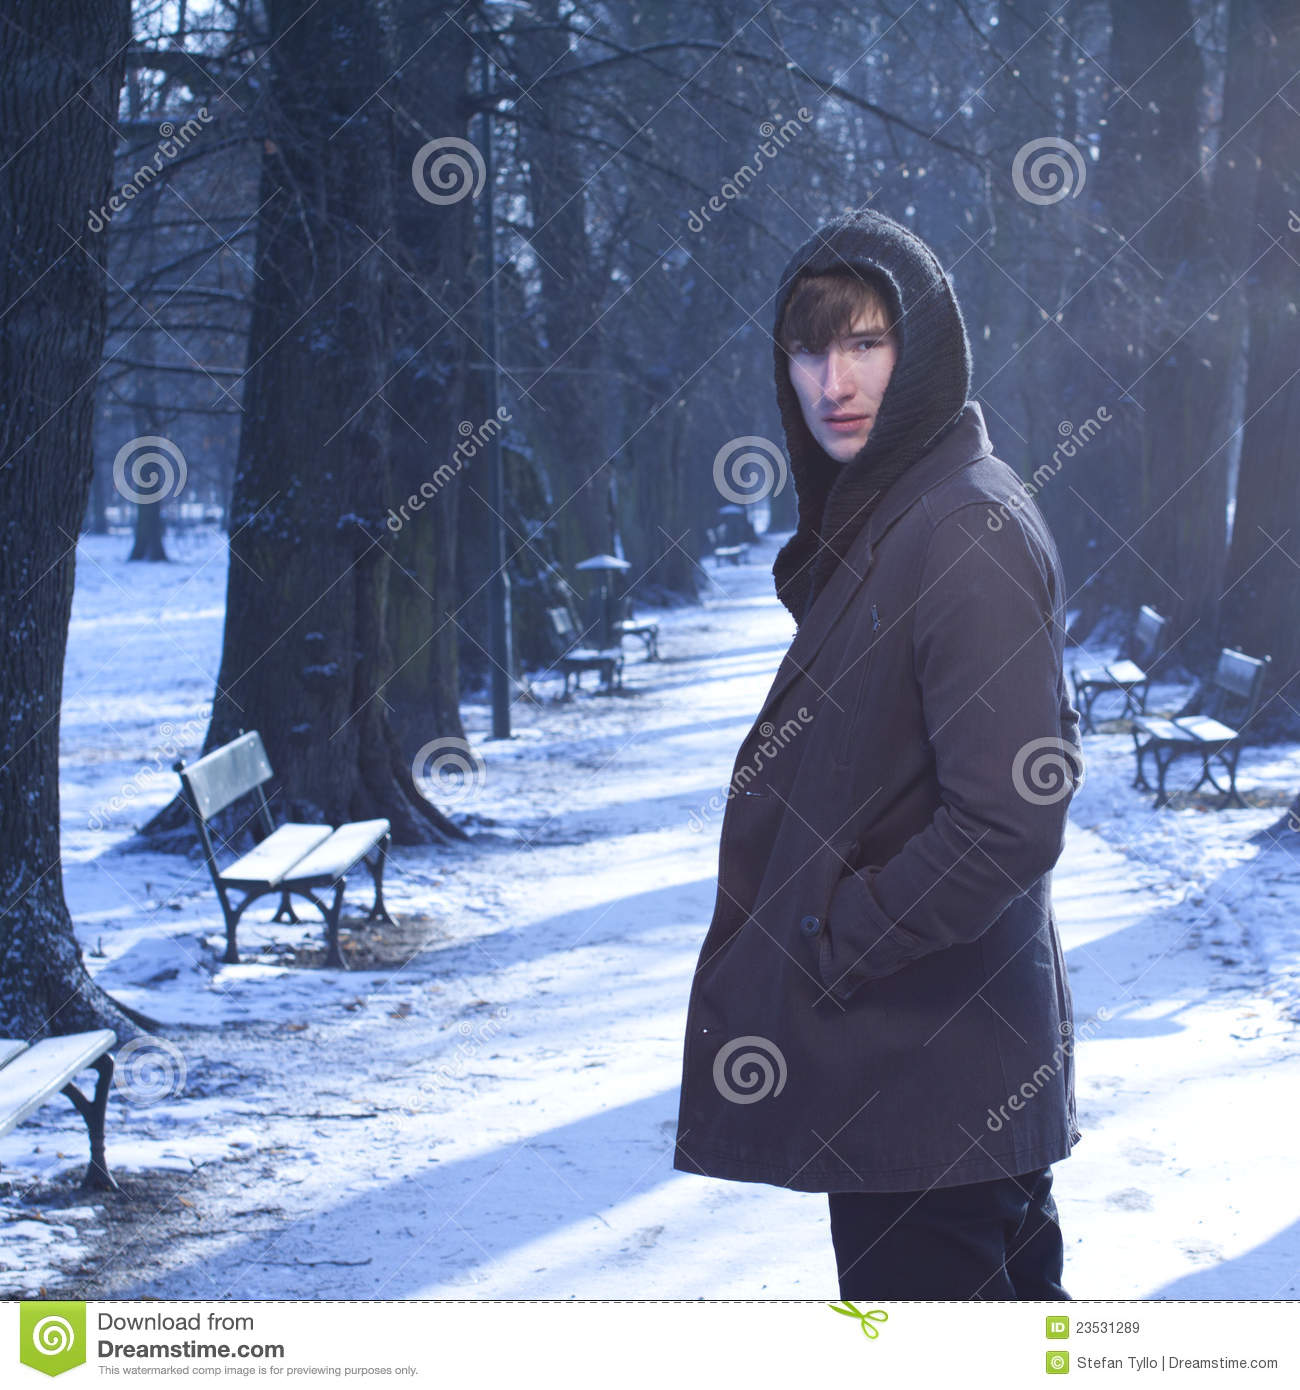 male model looking back  in a cold winter scenery  stock image